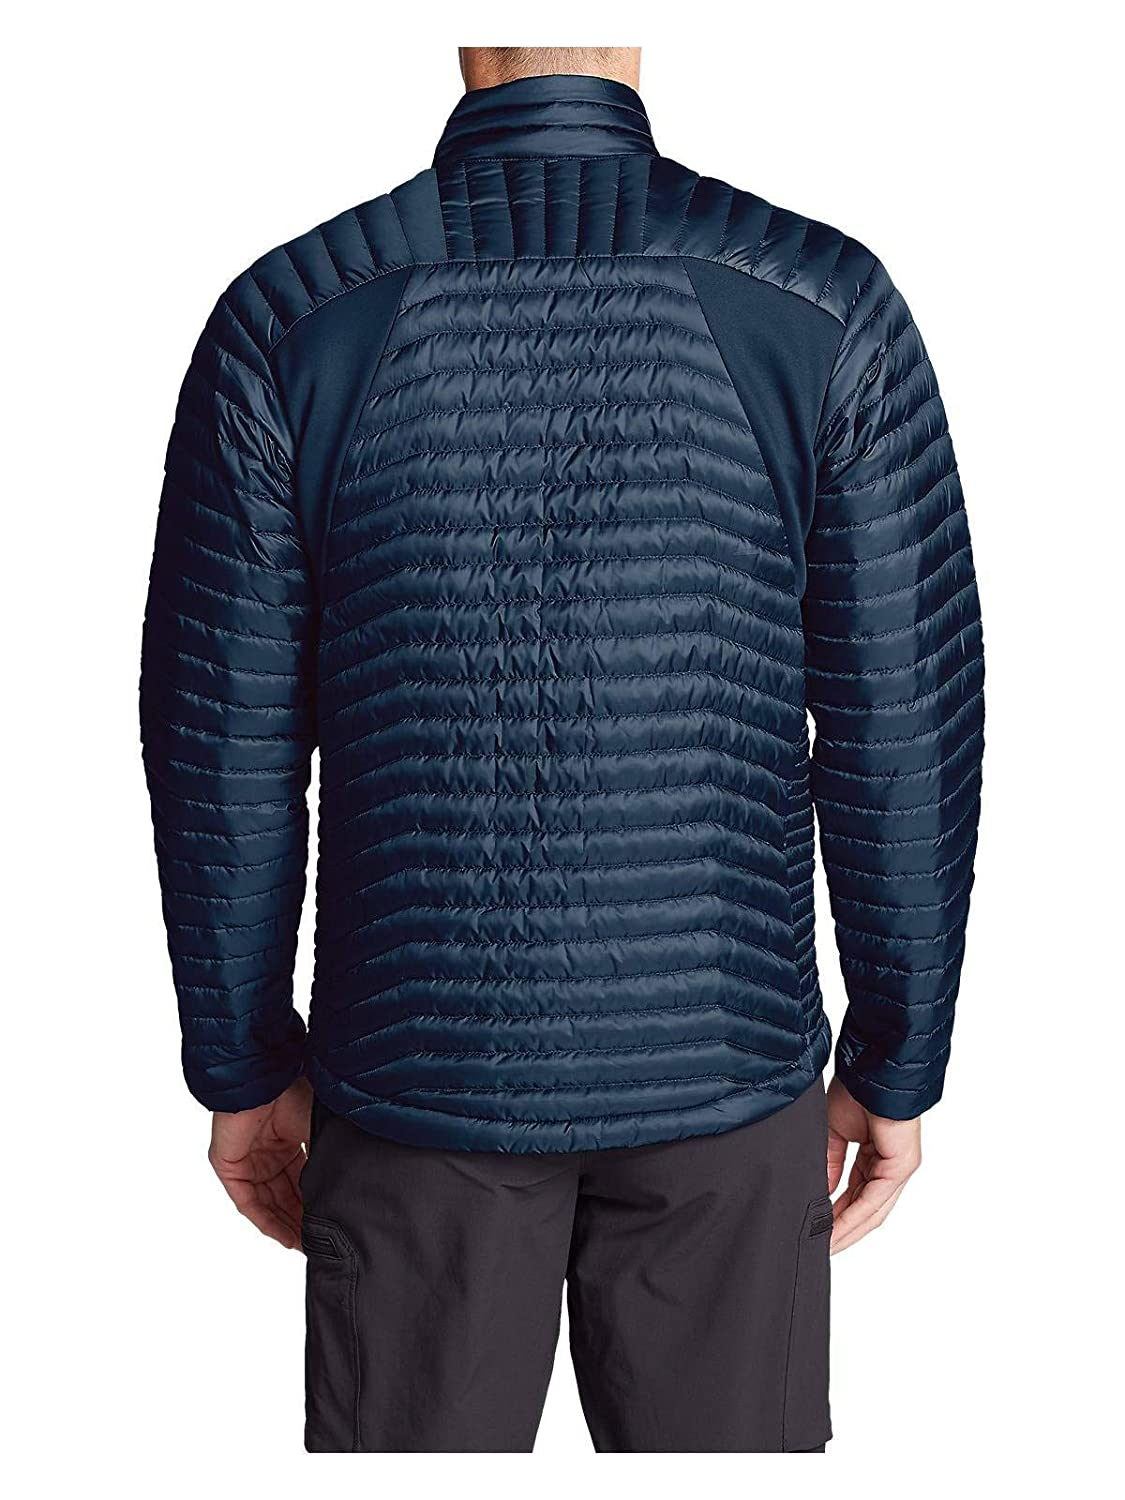 4a1119bbf7d72 Eddie Bauer Men s MicroTherm 2.0 StormDown Jacket at Amazon Men s Clothing  store